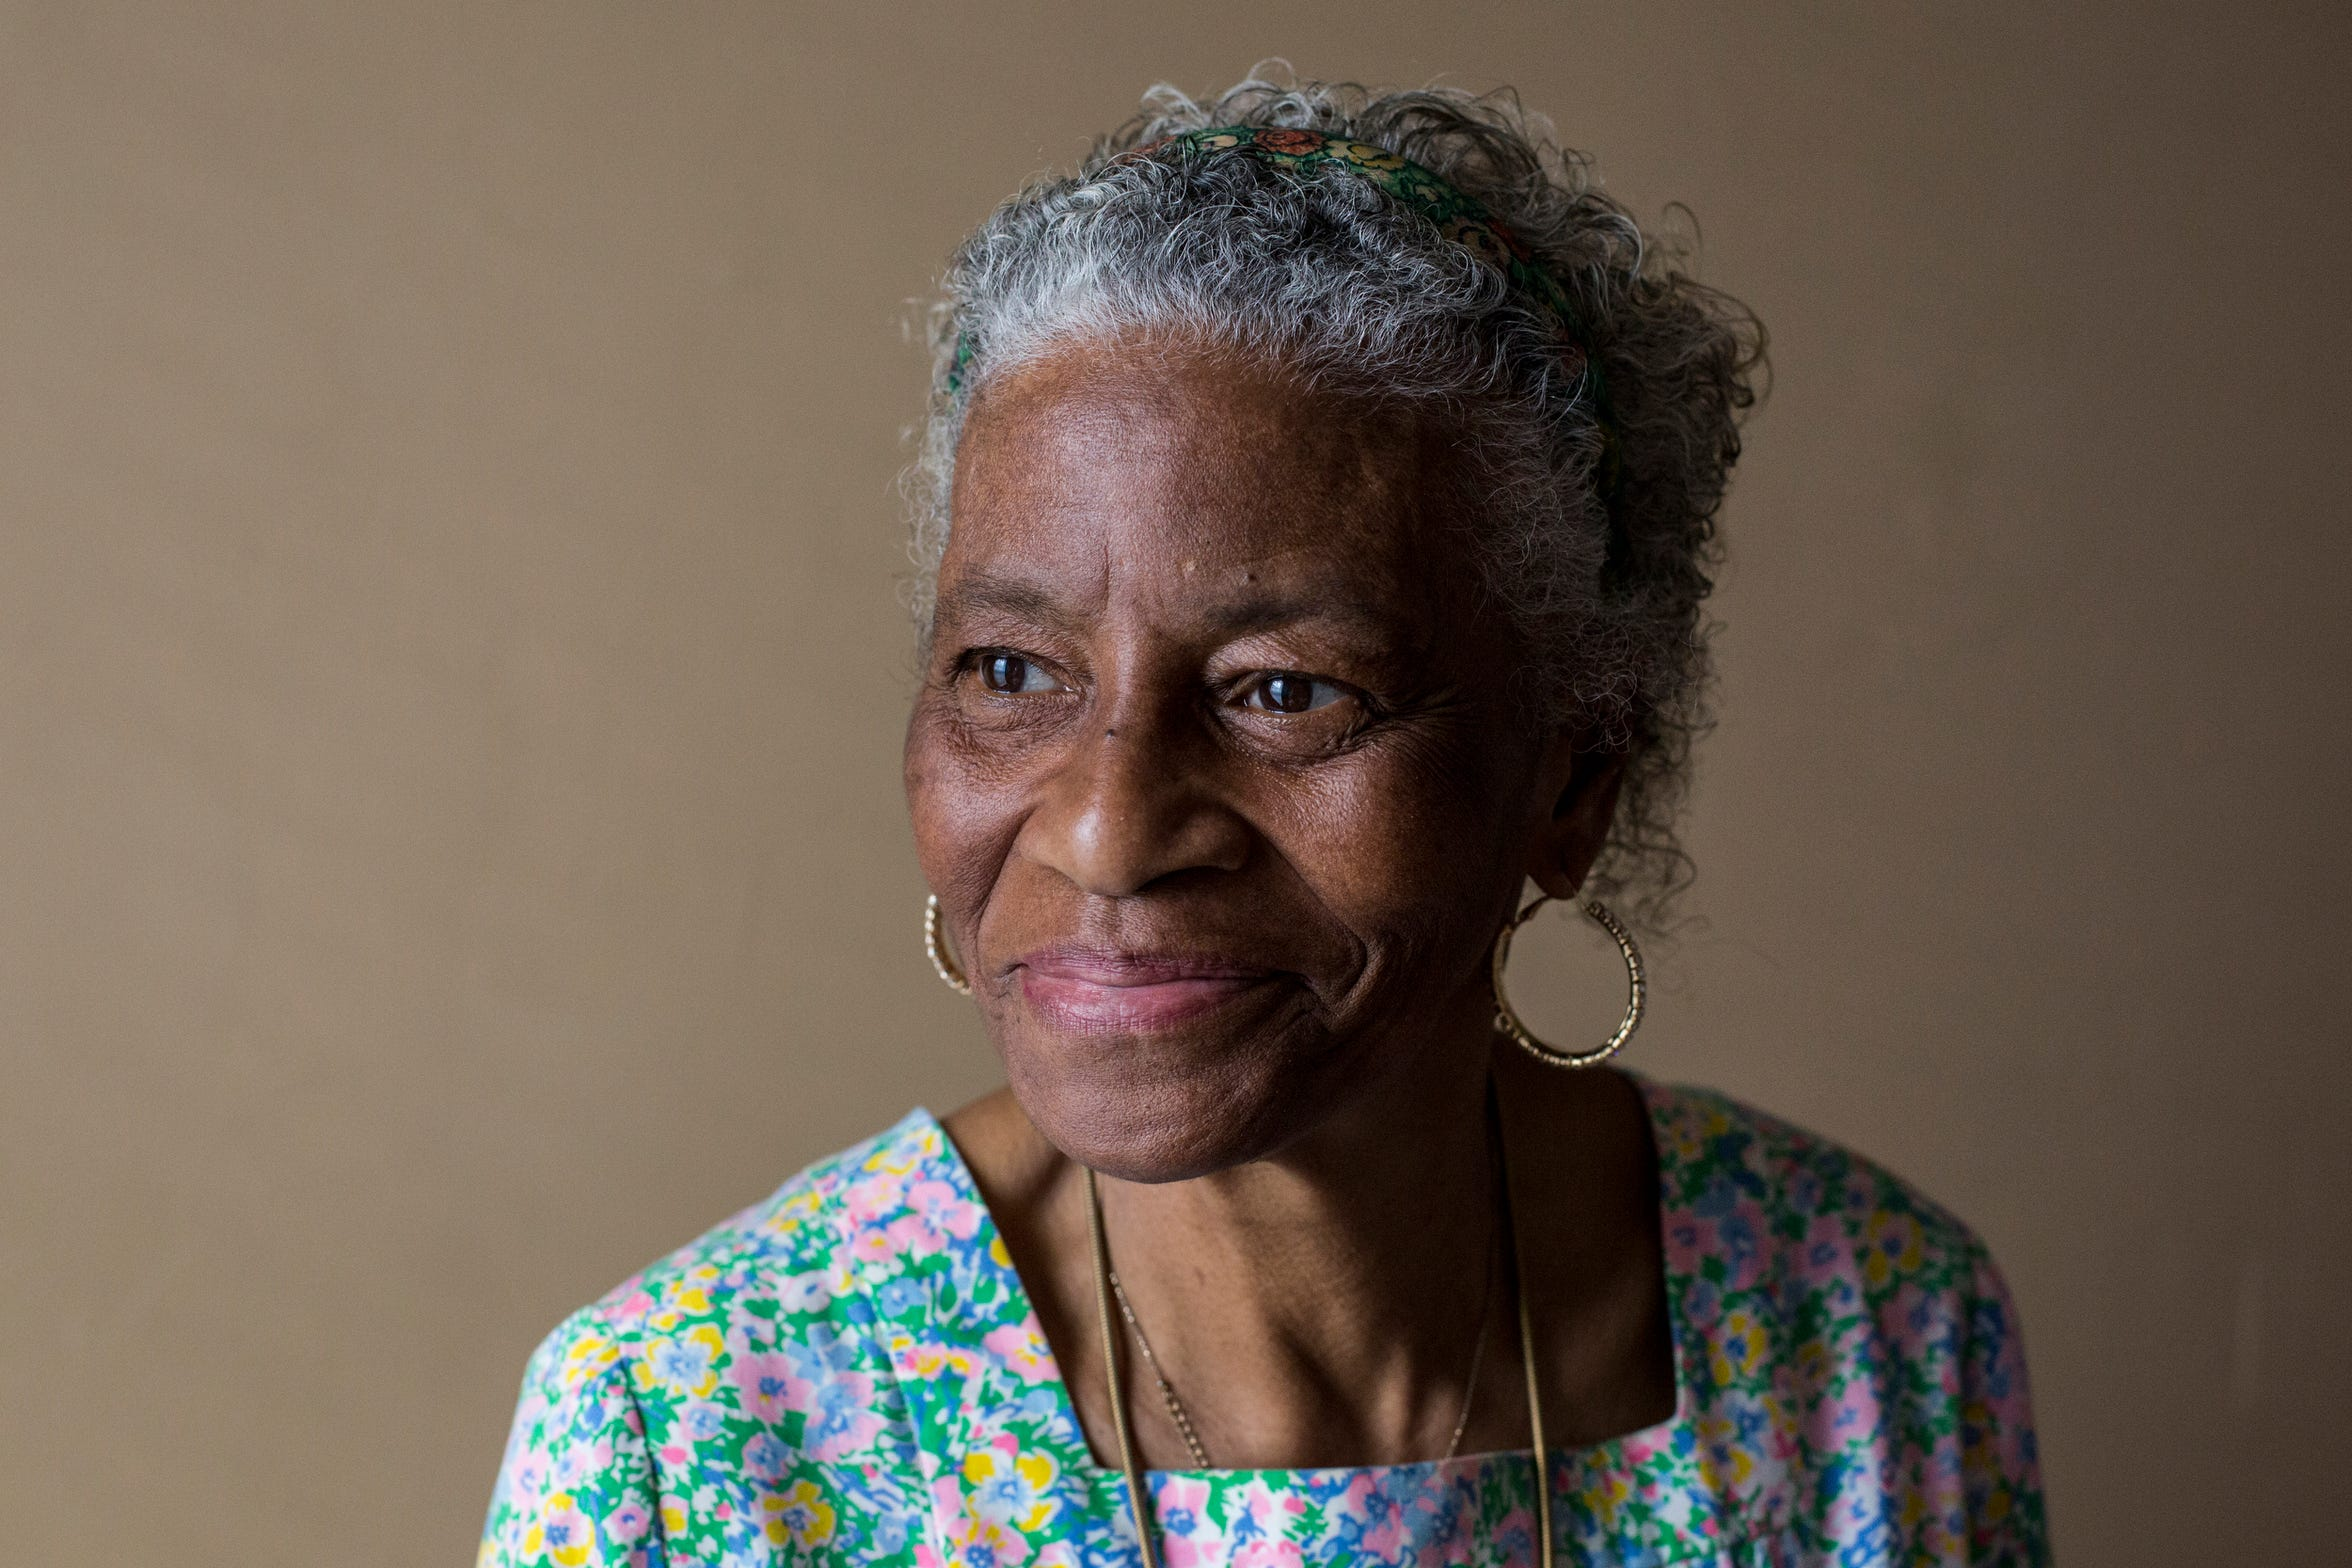 Everlena Yarbrough, 74, has been a resident of Soulsville for 42 years.